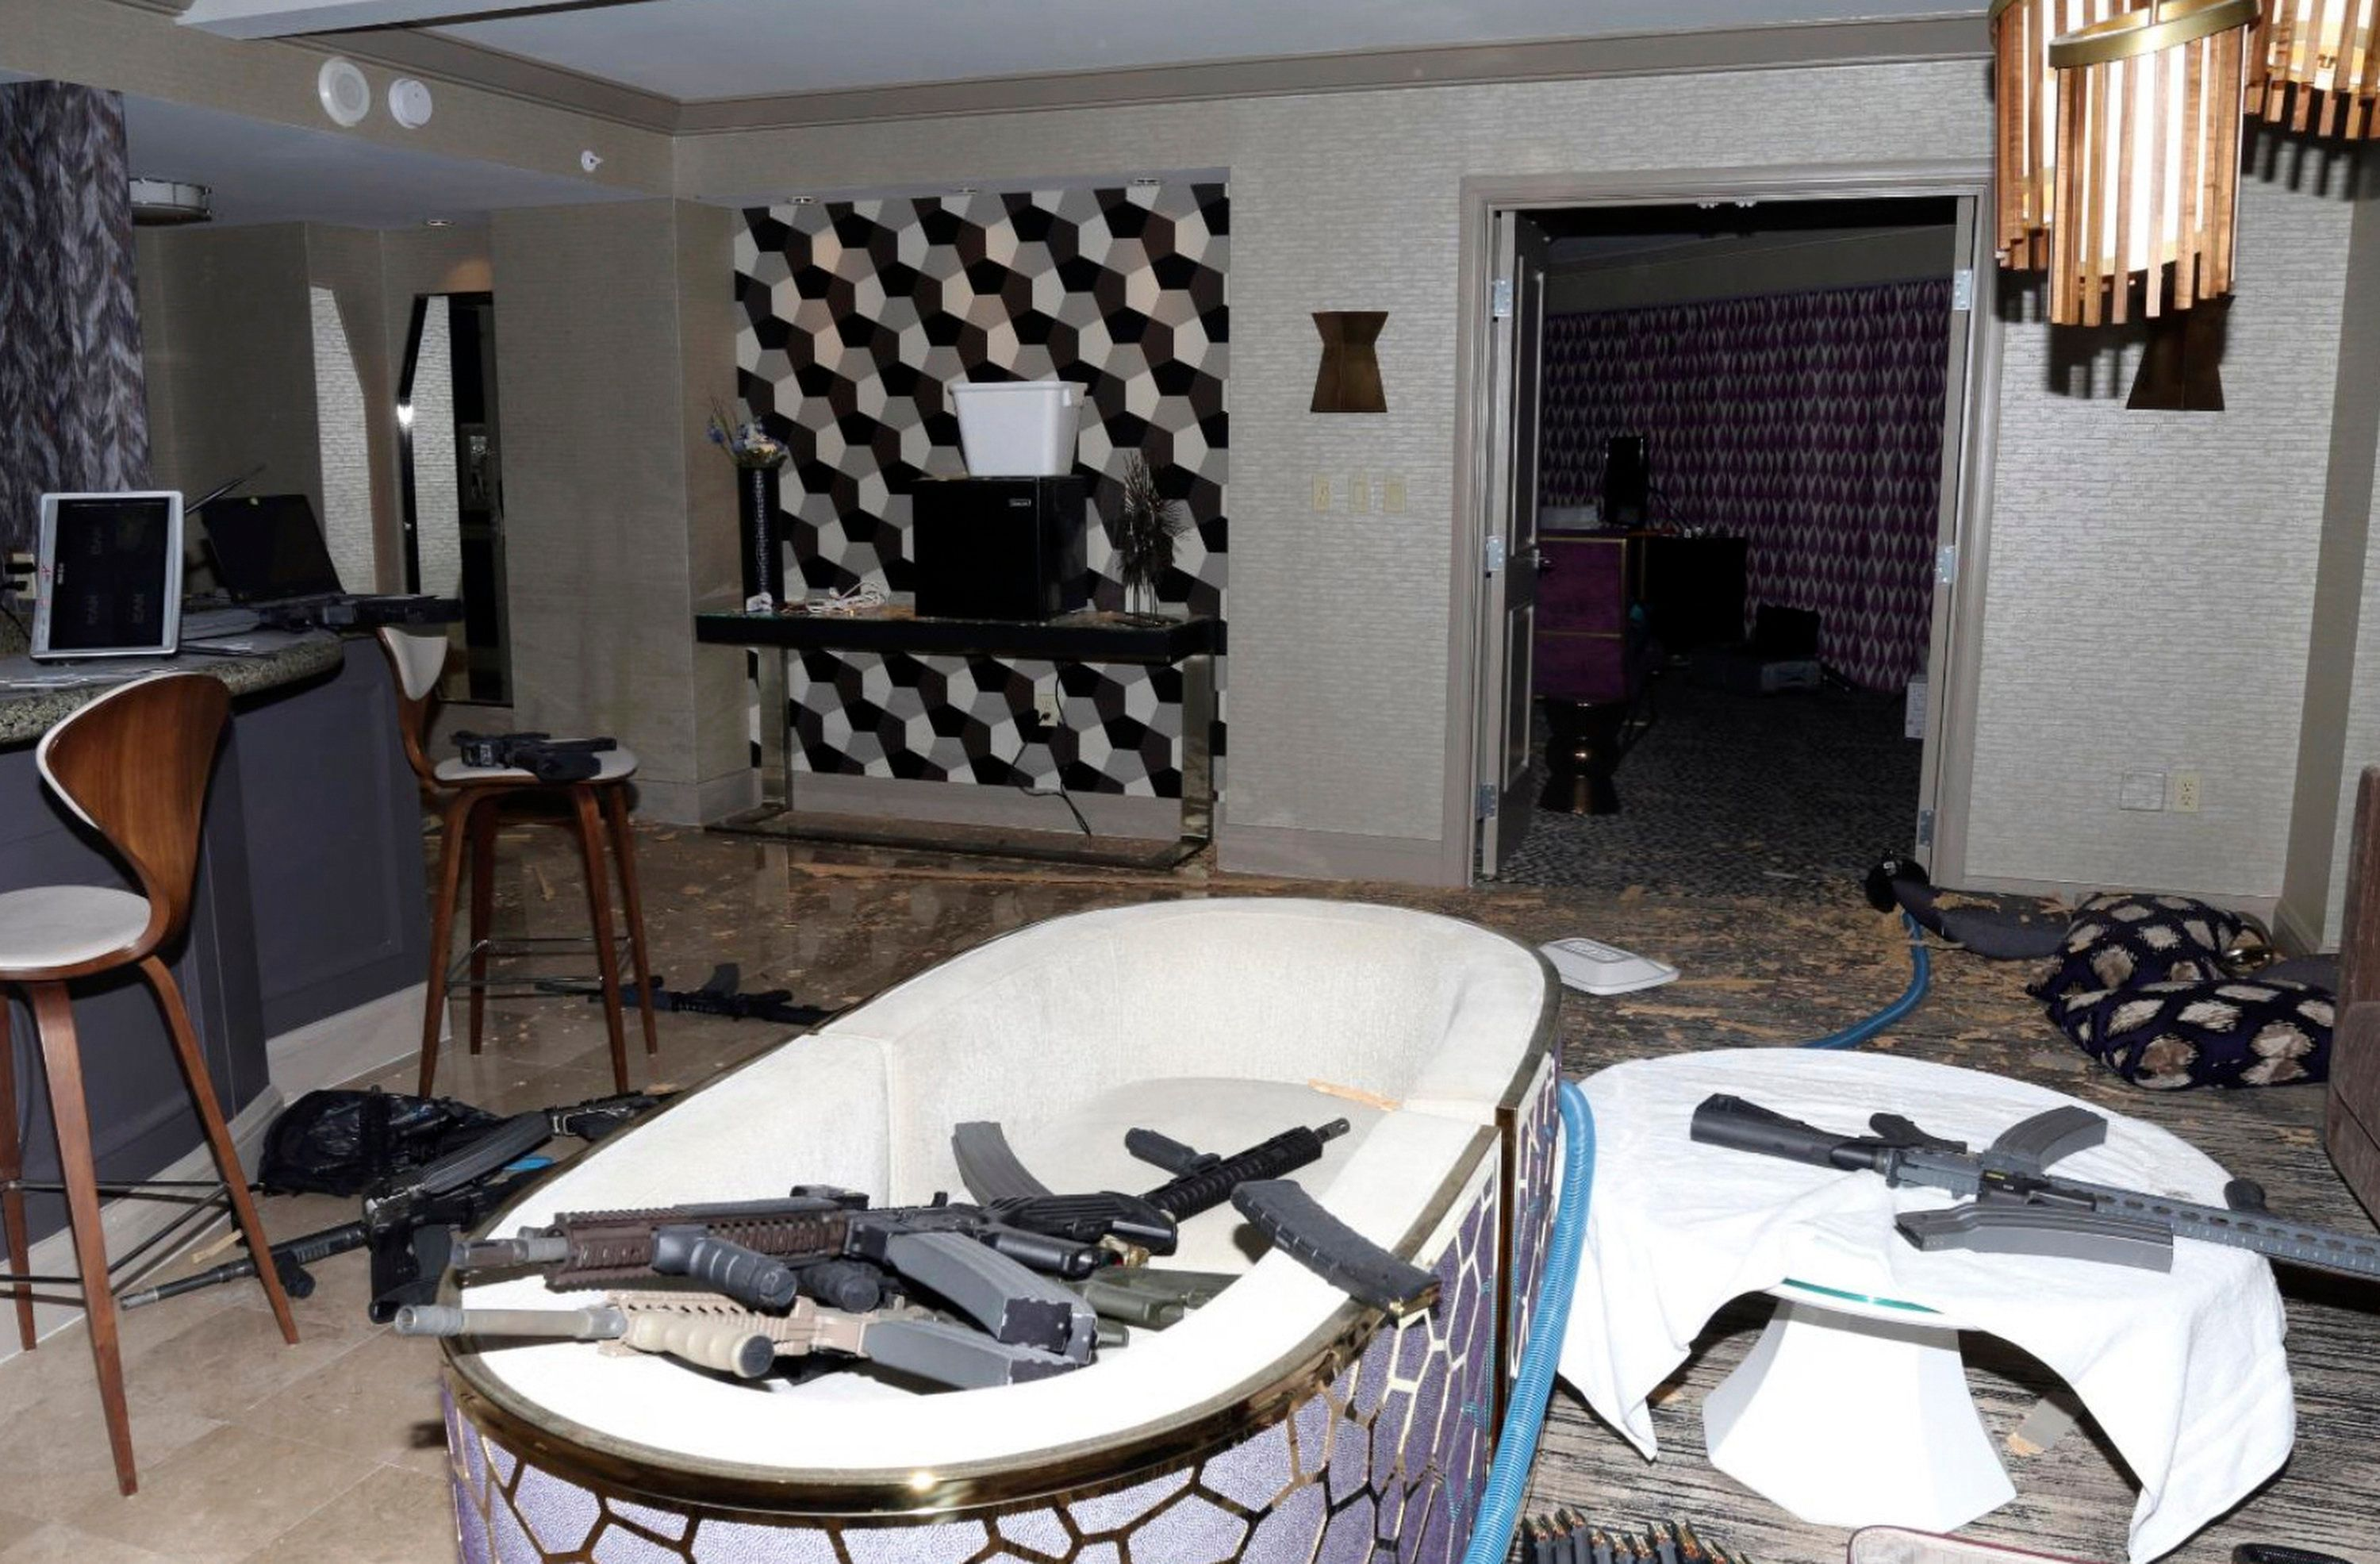 FILE - This October 2017 file evidence photo released by the Las Vegas Metropolitan Police Department Force Investigation Team Report shows the interior of Stephen Paddock's 32nd floor room of the Mandalay Bay hotel in Las Vegas after the Oct. 1, 2017 mass shooting. Police in Las Vegas said Thursday, Jan. 3, 2019, they have finished releasing audio, video and written records about the investigation of the deadliest mass shooting in modern U.S. history. (Las Vegas Metropolitan Police Department via AP, File)